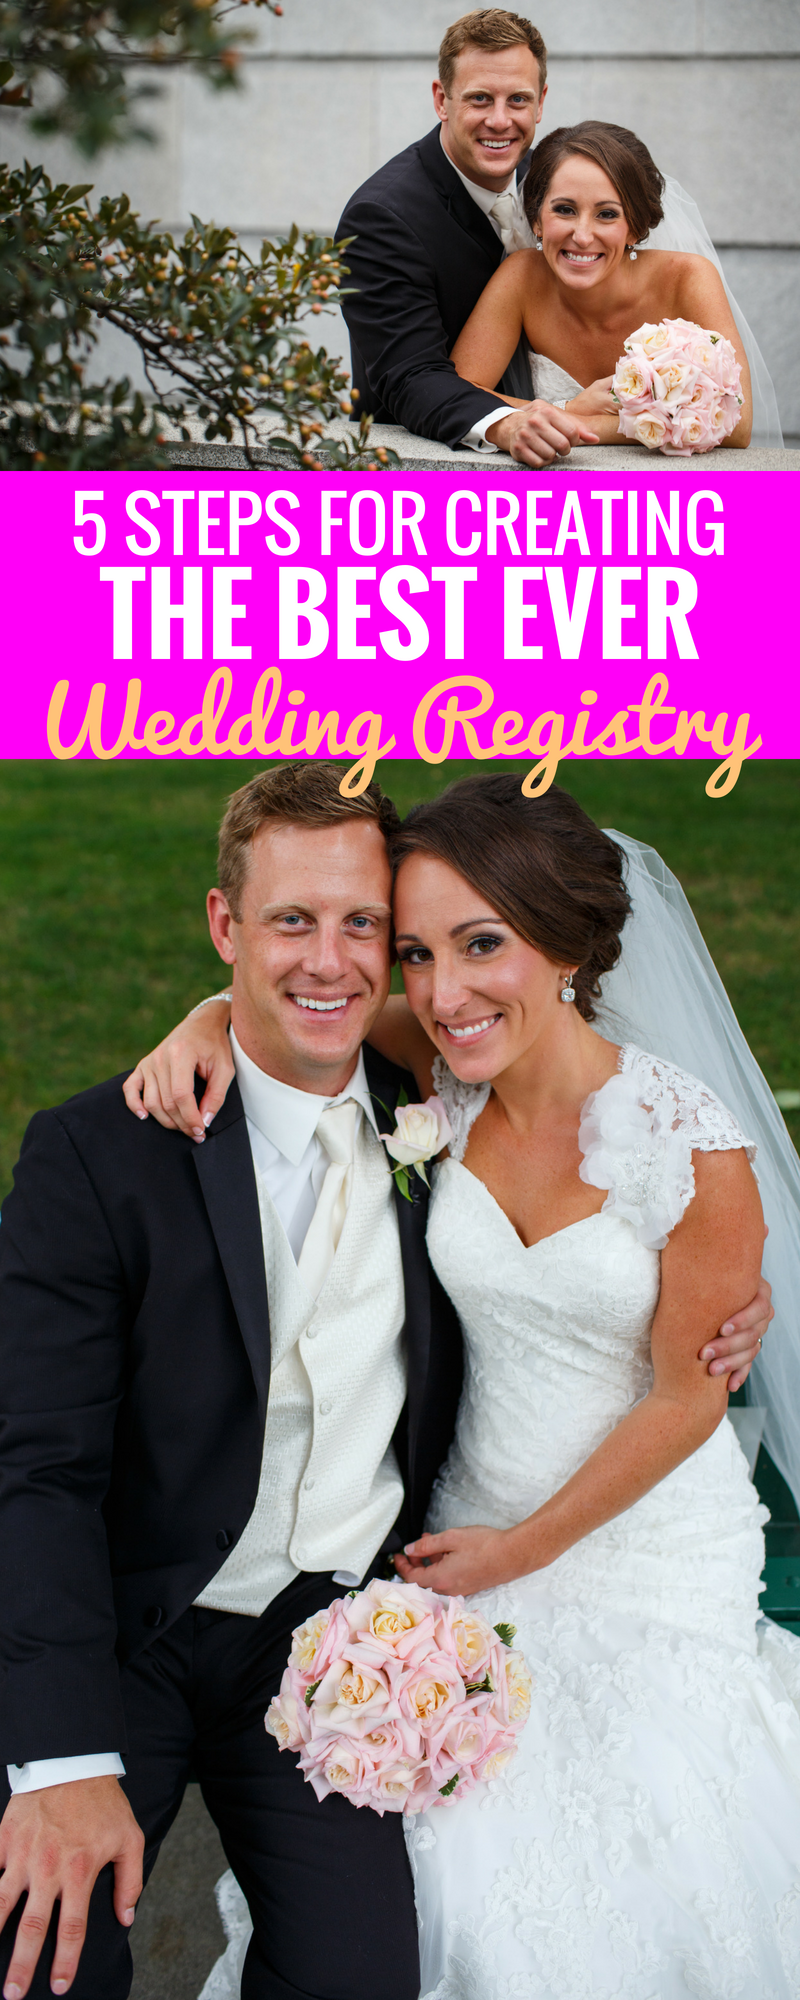 5 Tips For Making A Wedding Registry - Wedding Registry Hacks - Planning A Wedding- Wedding Tips - Best Registry Ideas - Best Places To Register - Wedding Registry Tips - Planning A Wedding - Communikait by Kait Hanson